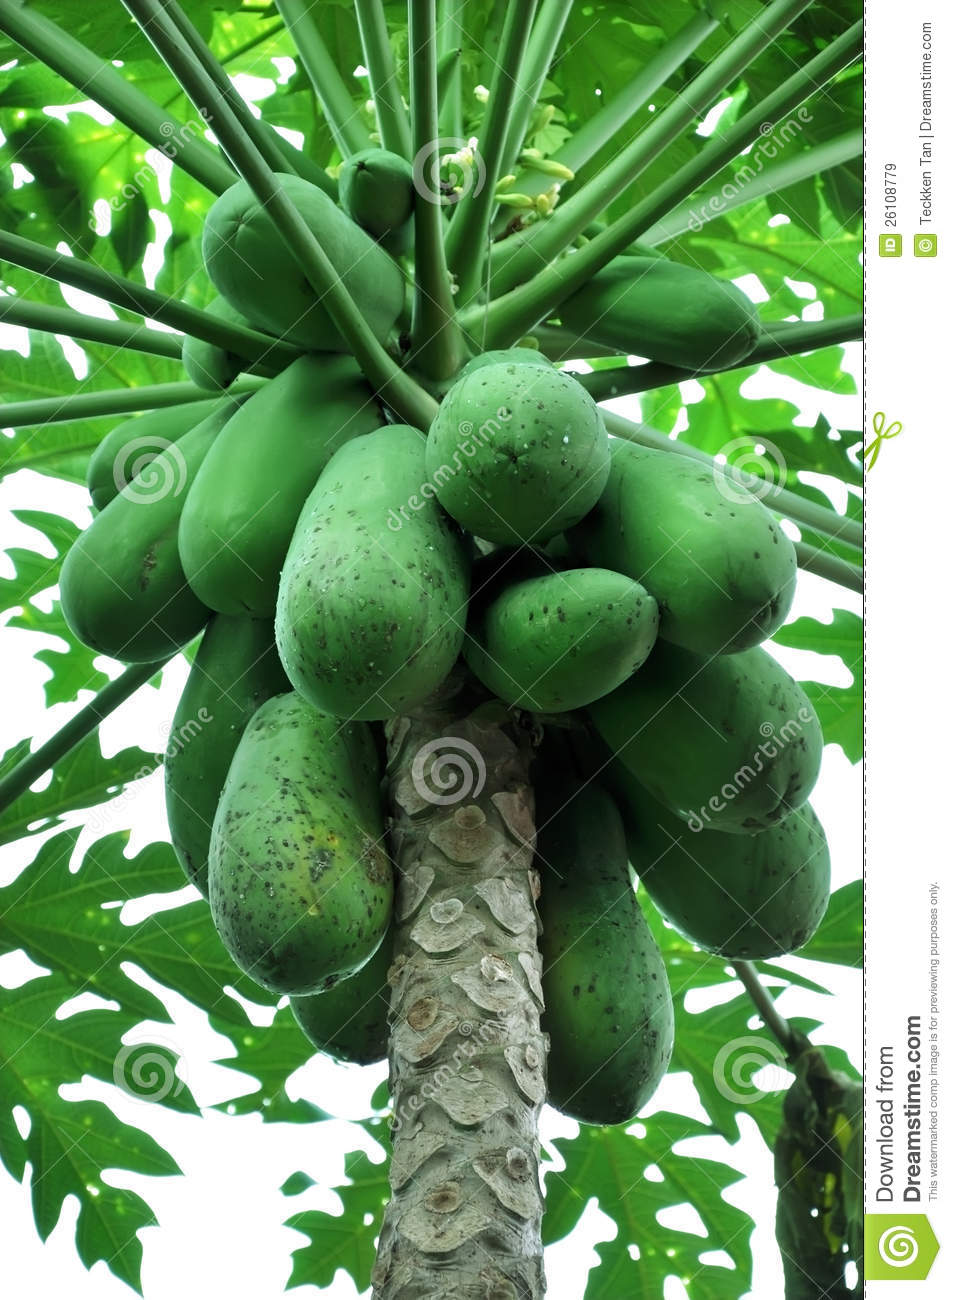 Papaya Tree Images Download